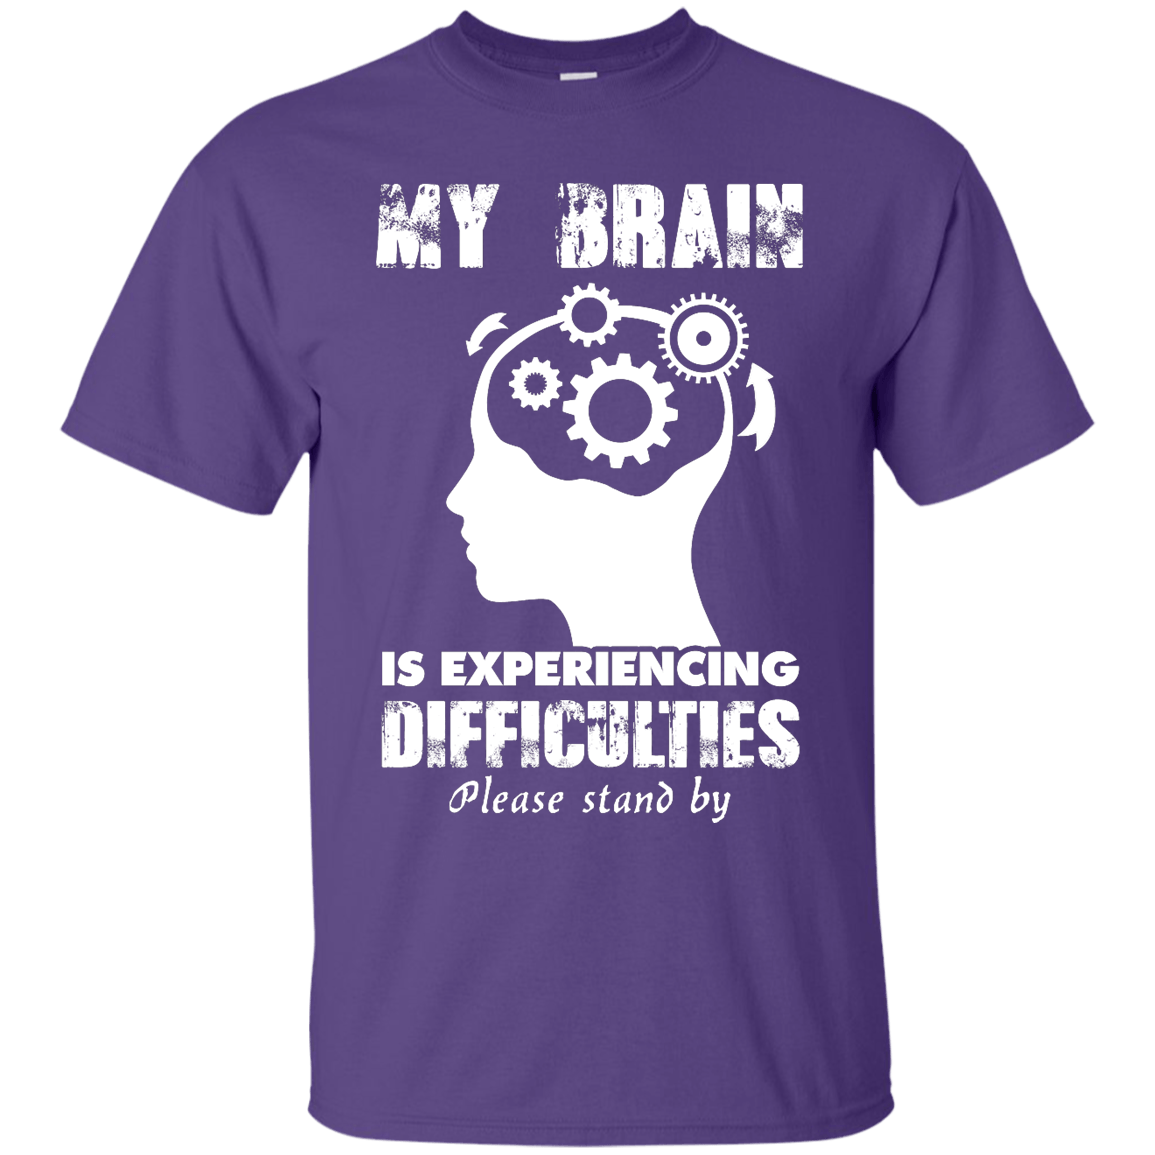 Brain Fog Unisex Shirt - The Unchargeables